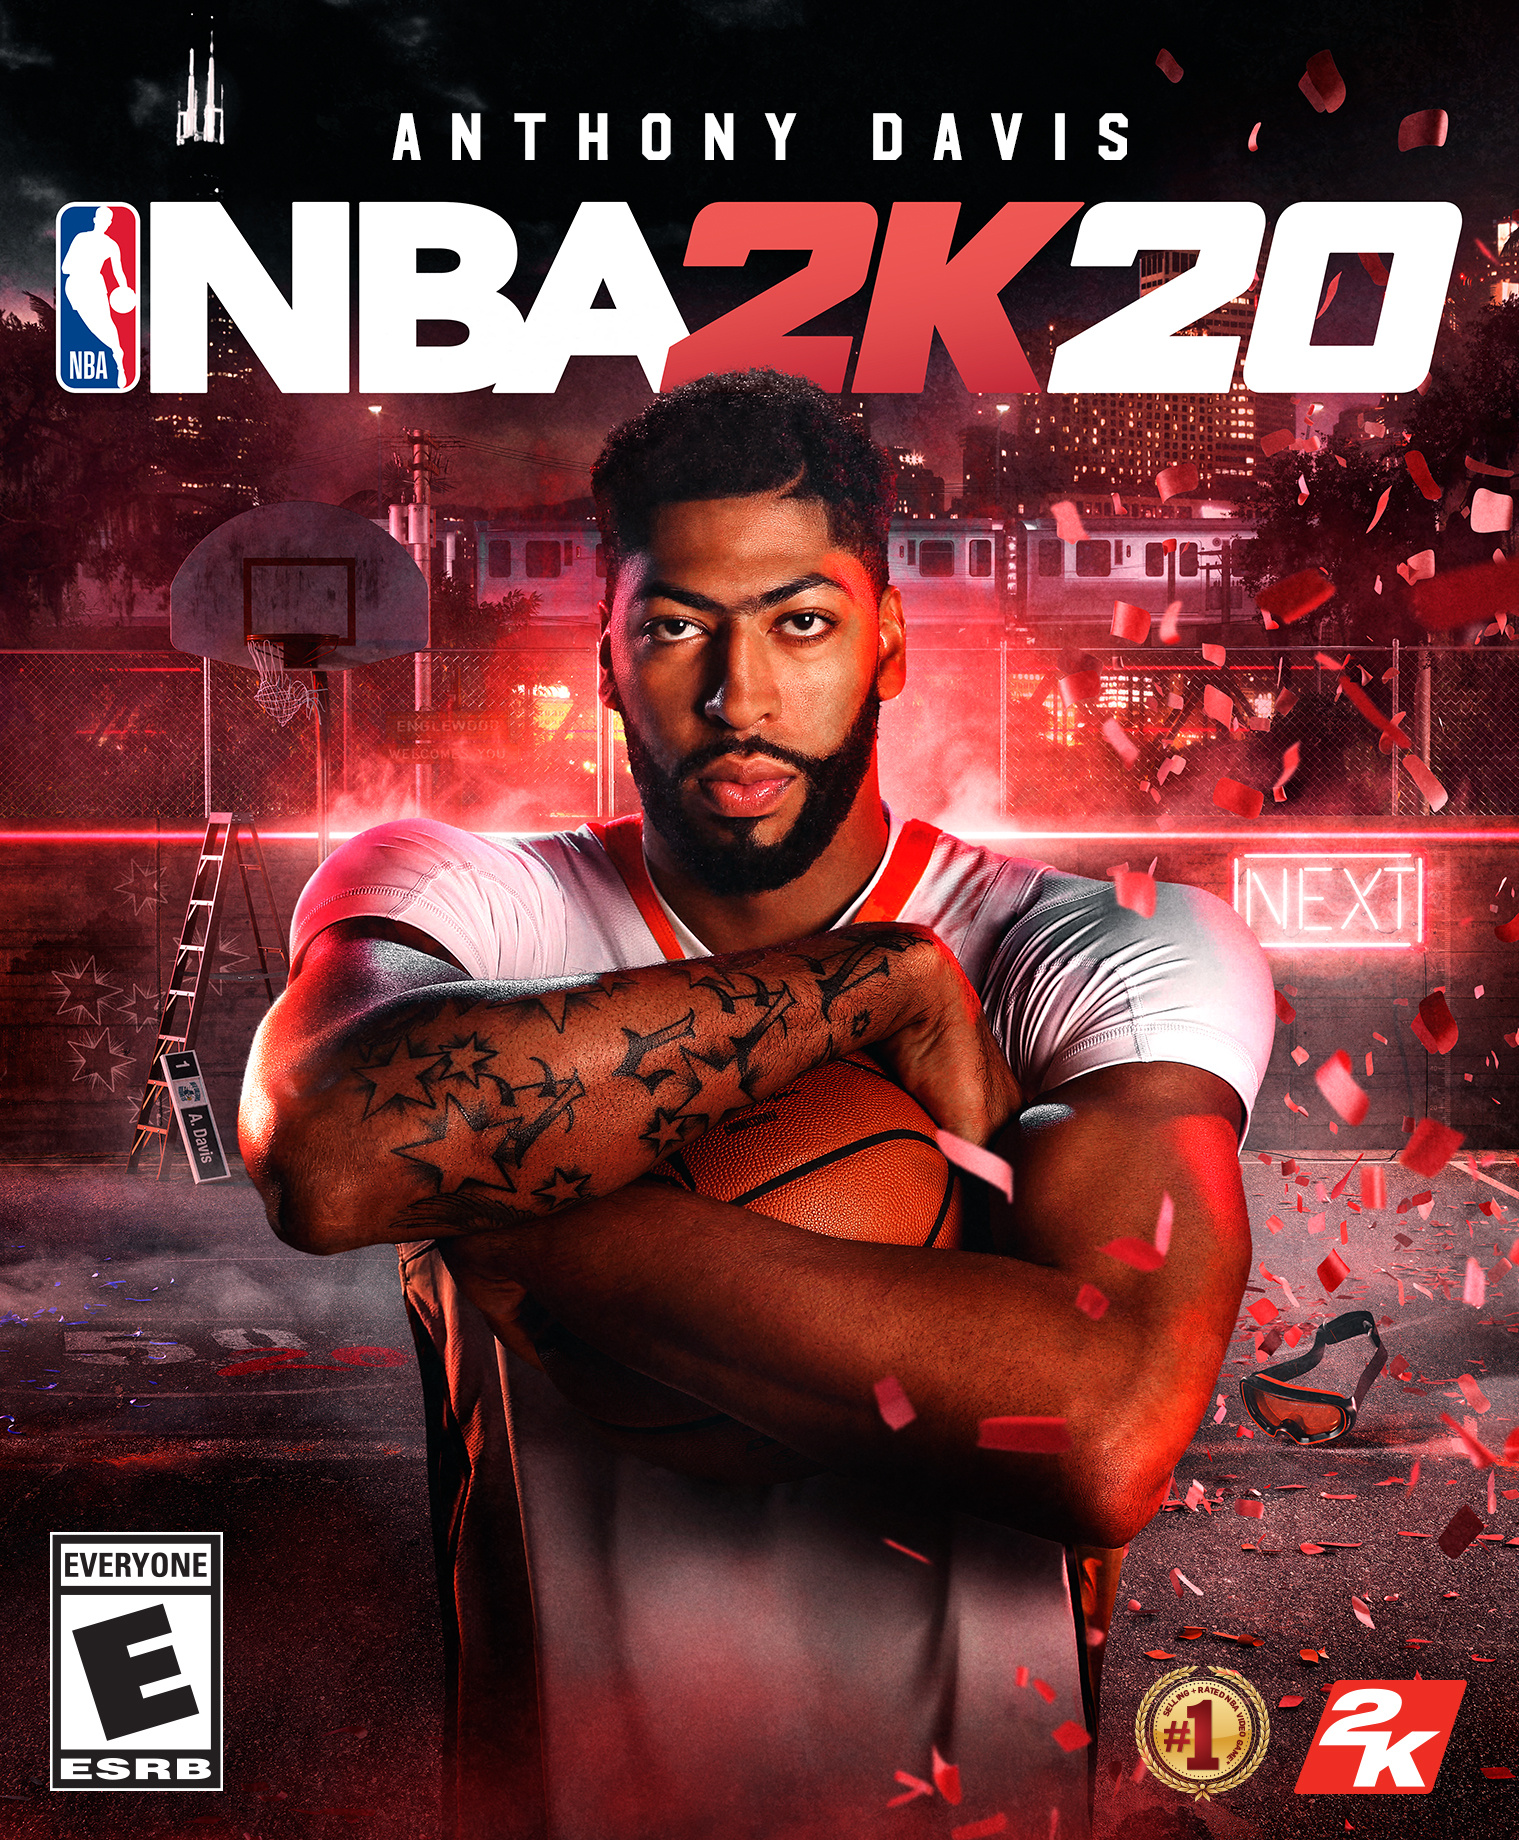 Image result for nba2k20 anthony davis